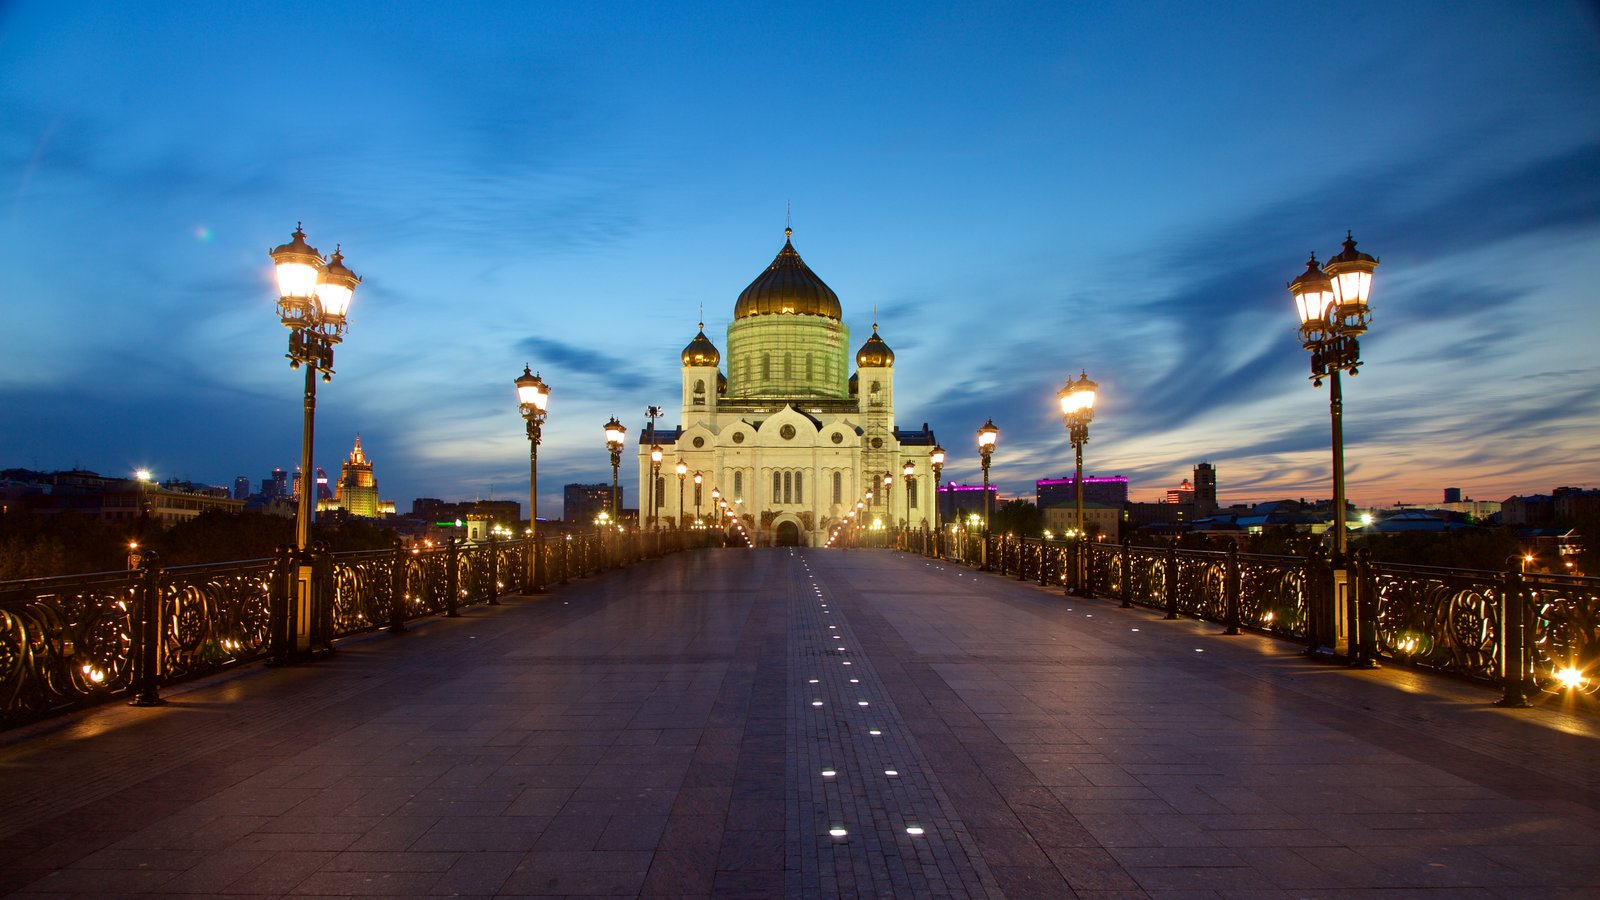 Cathedral of Christ the Savior which includes night scenes and heritage architecture